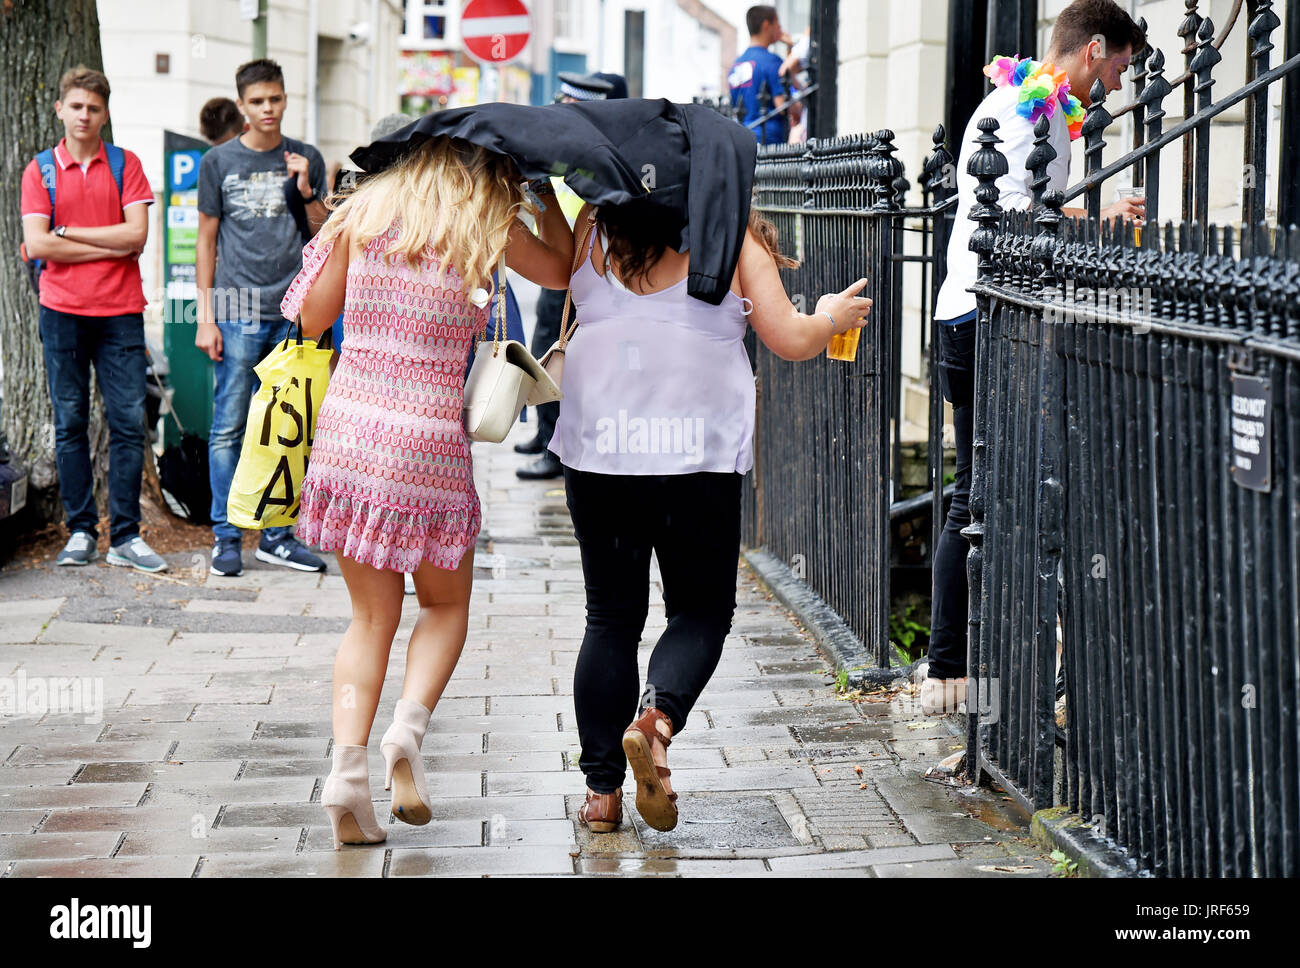 Brighton, UK. 5th Aug, 2017. Party goers at Brighton Pride rush for cover as heavy rain showers sweep across the south east of Britain this afternoon Credit: Simon Dack/Alamy Live News - Stock Image